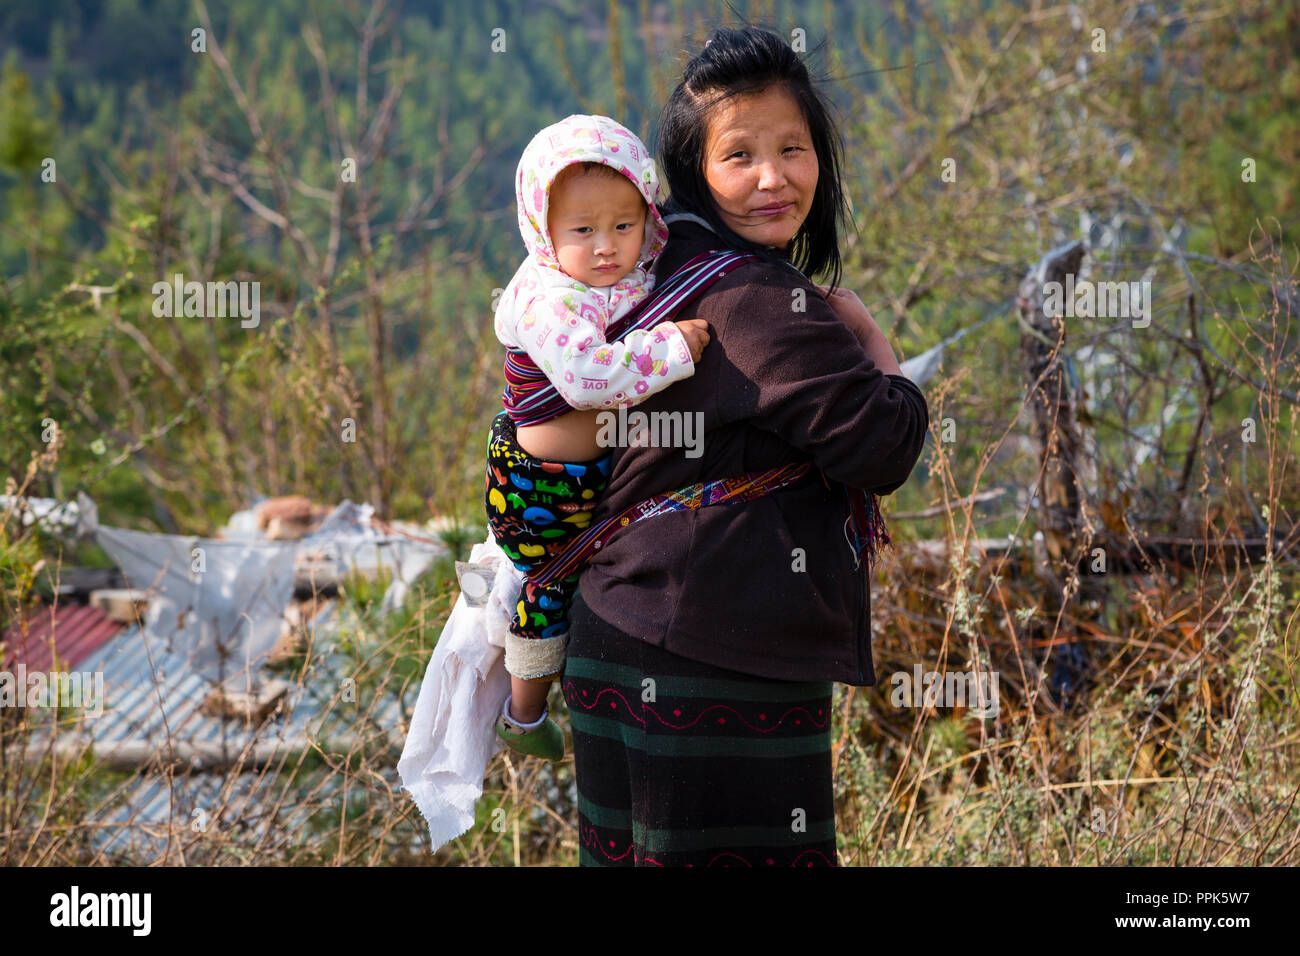 A Bhutanese local woman carries her baby on her back in Thimpu, the capital city of the Himalayan Kingdom of Bhutan - Stock Image